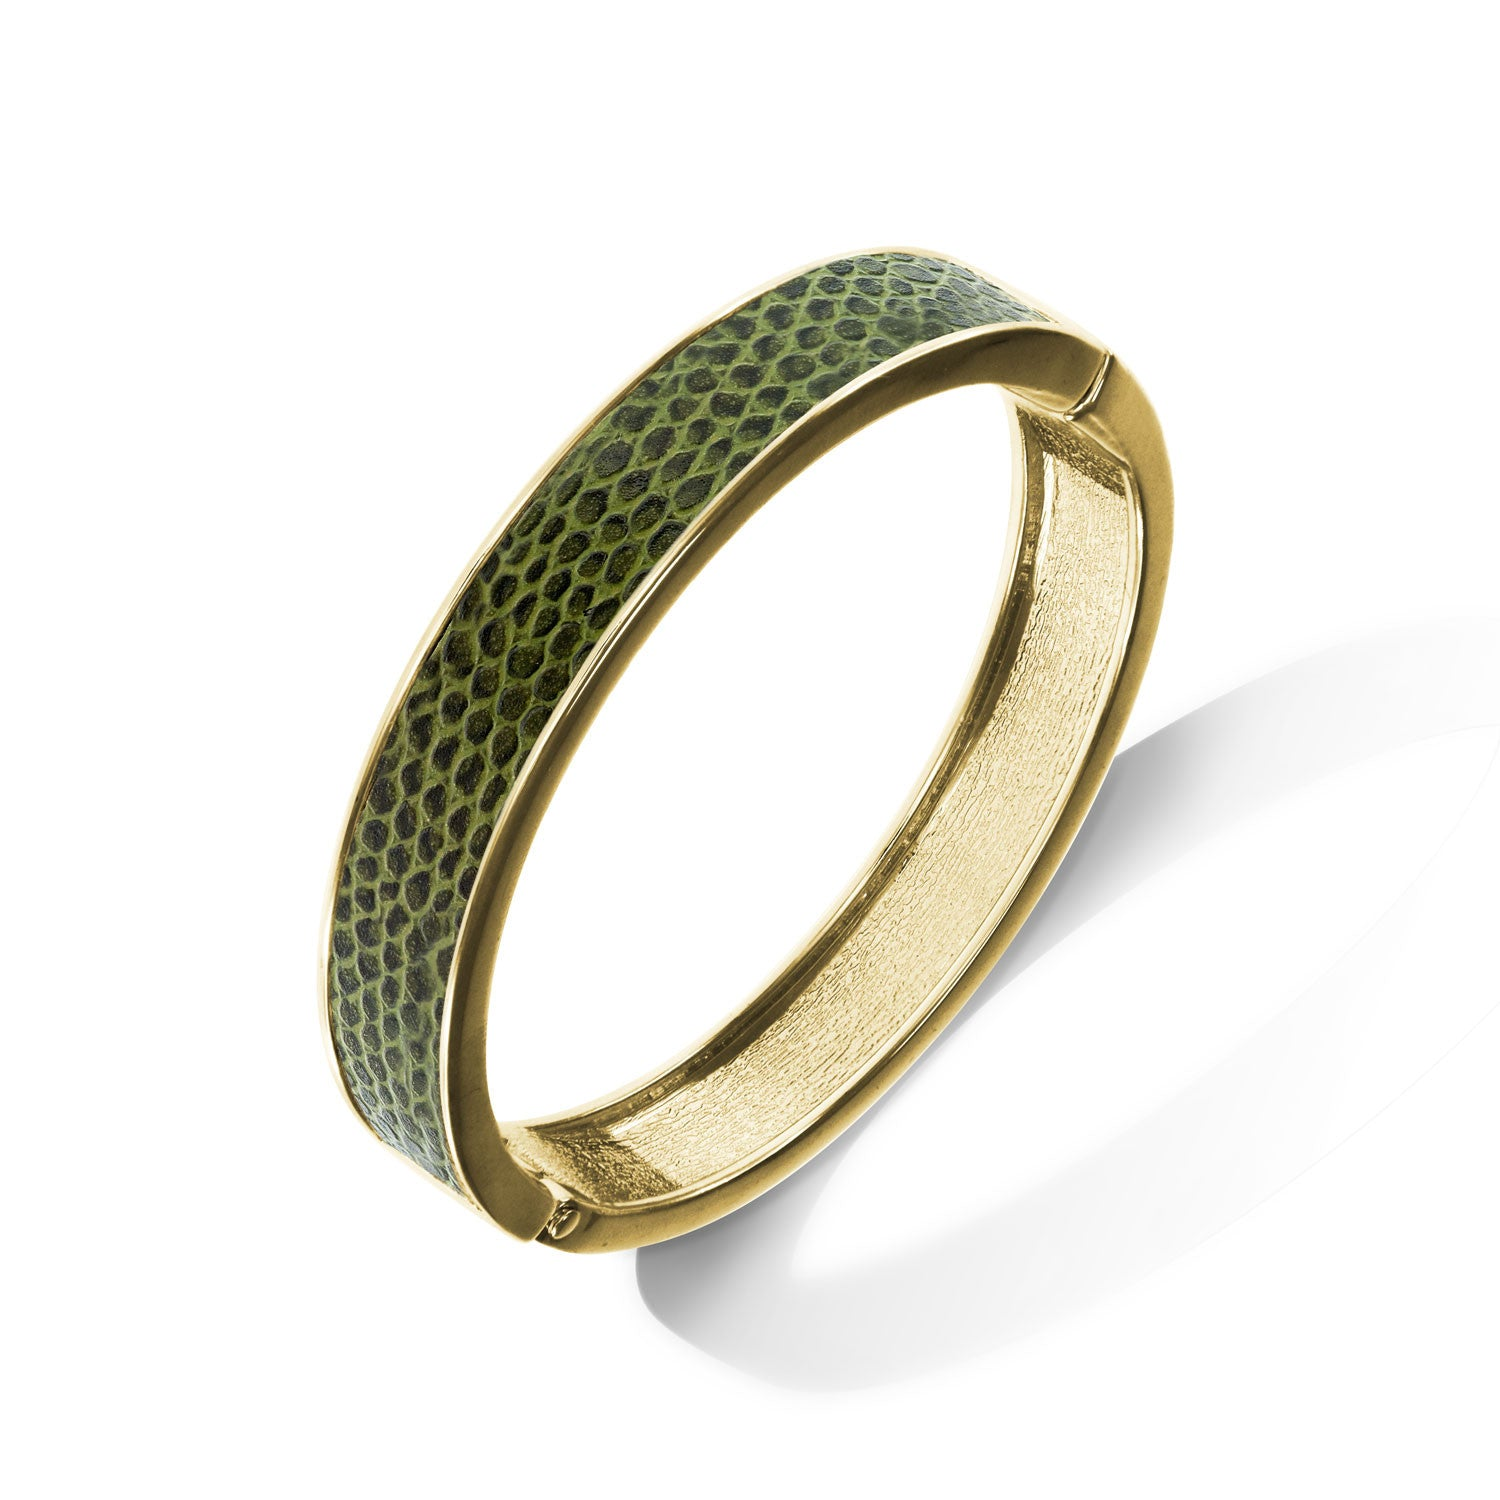 """Sabi Colori"" Meadow Green Lizard Inlay Thin Hinge Bangle -Goldtone"